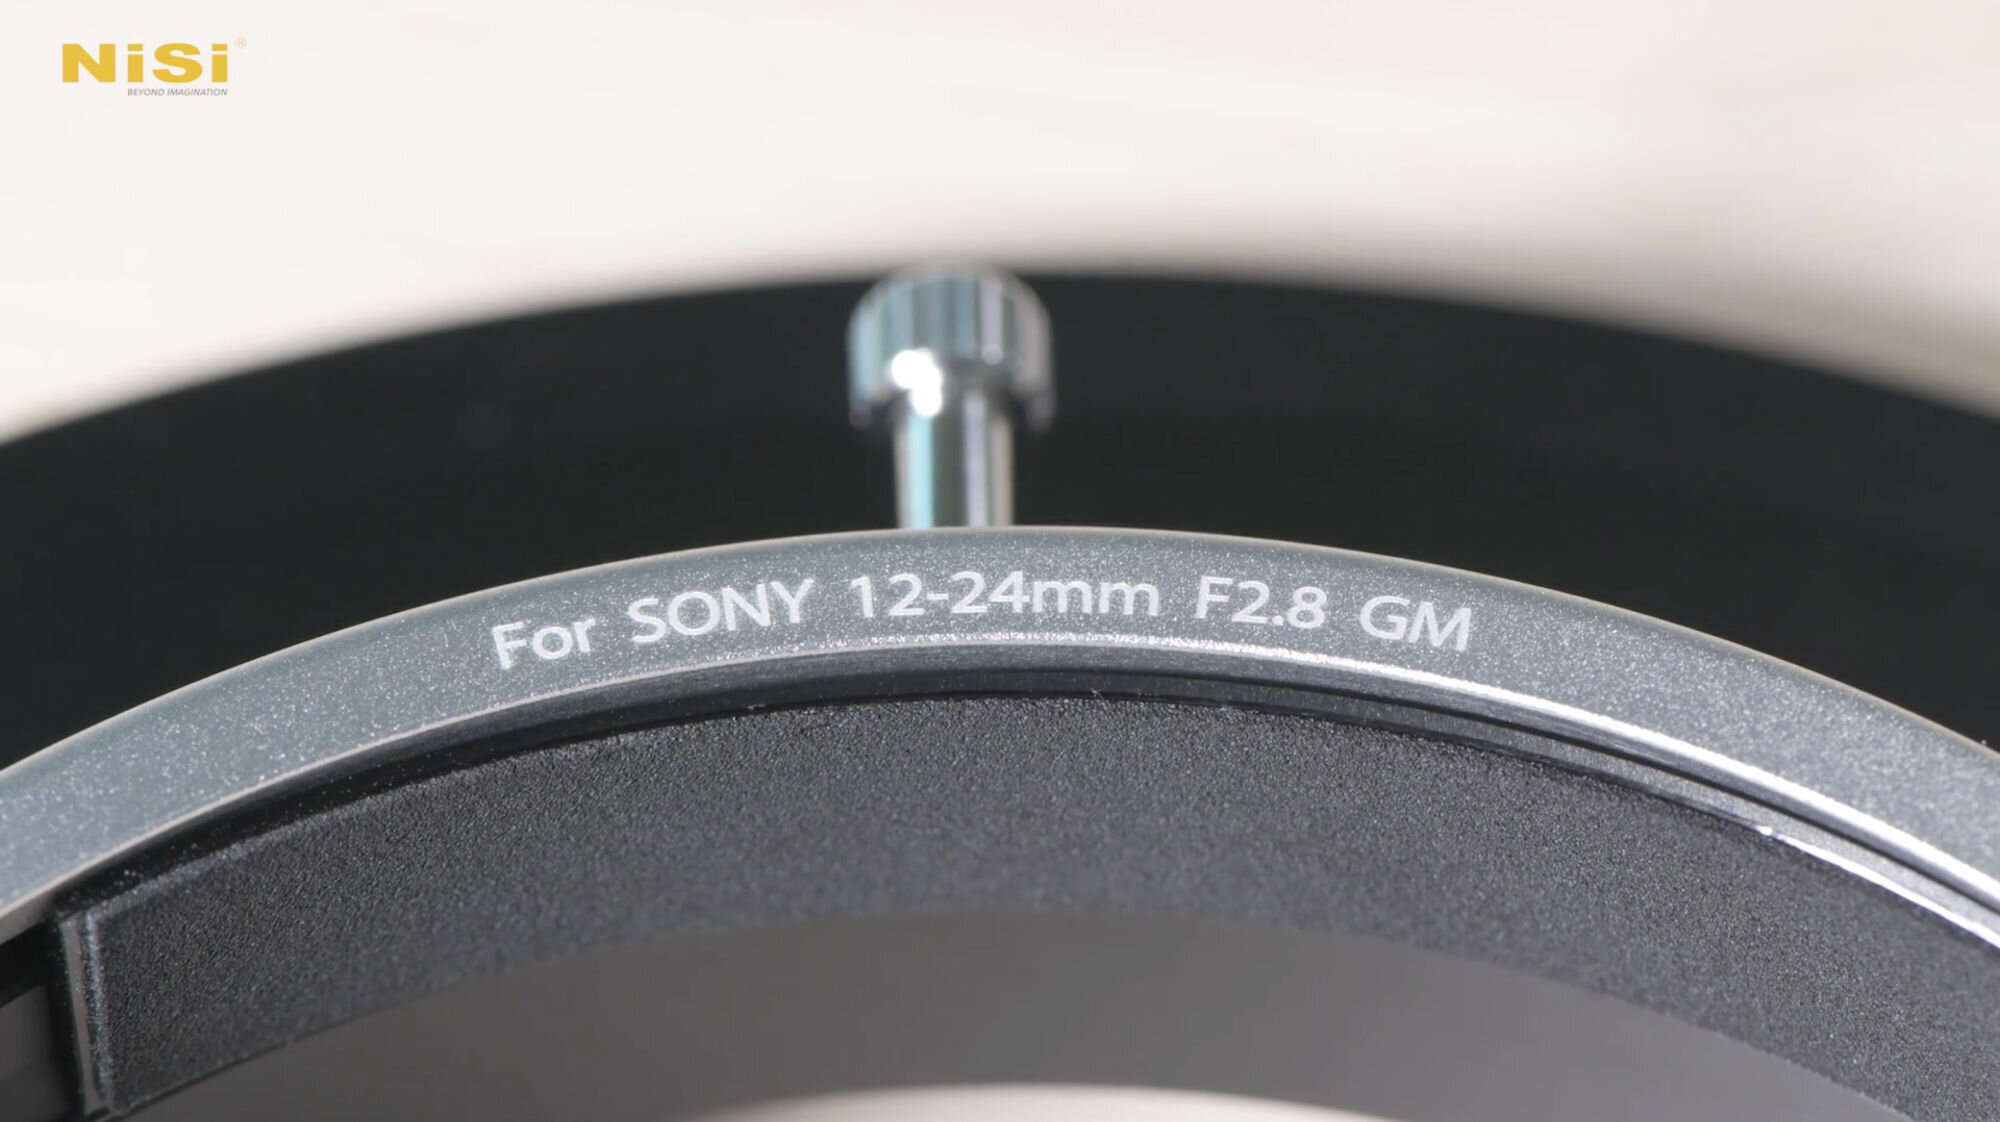 NiSi S6 150mm Filter Holder Adapter Ring for Sony FE 12-24mm f//2.8 GM